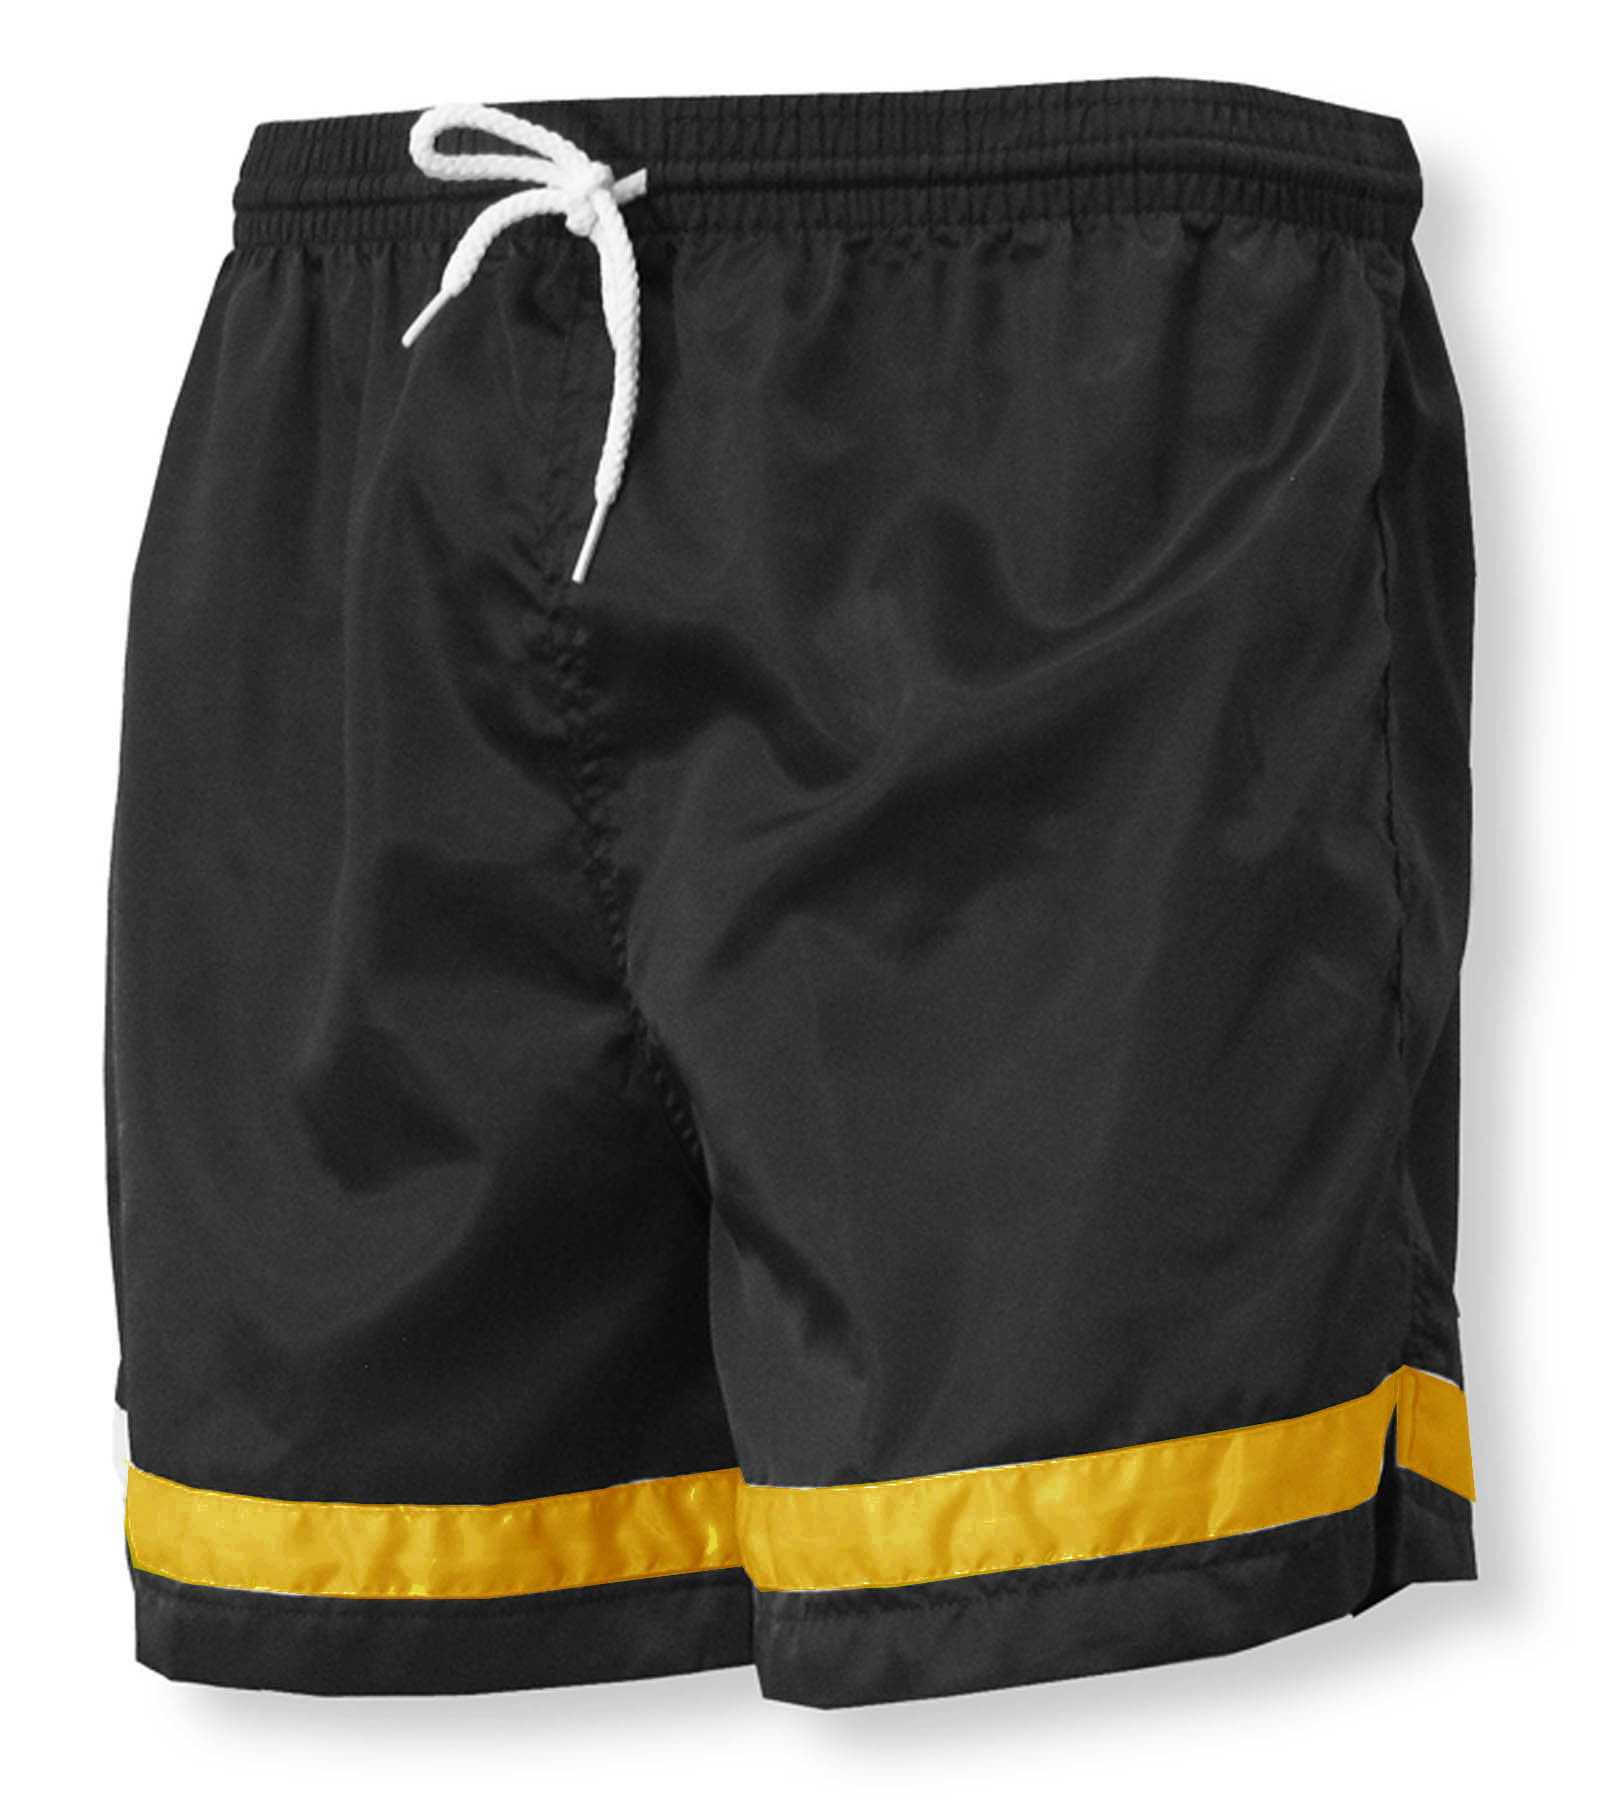 Vashon soccer shorts in black/gold nylon by Code Four Athletics